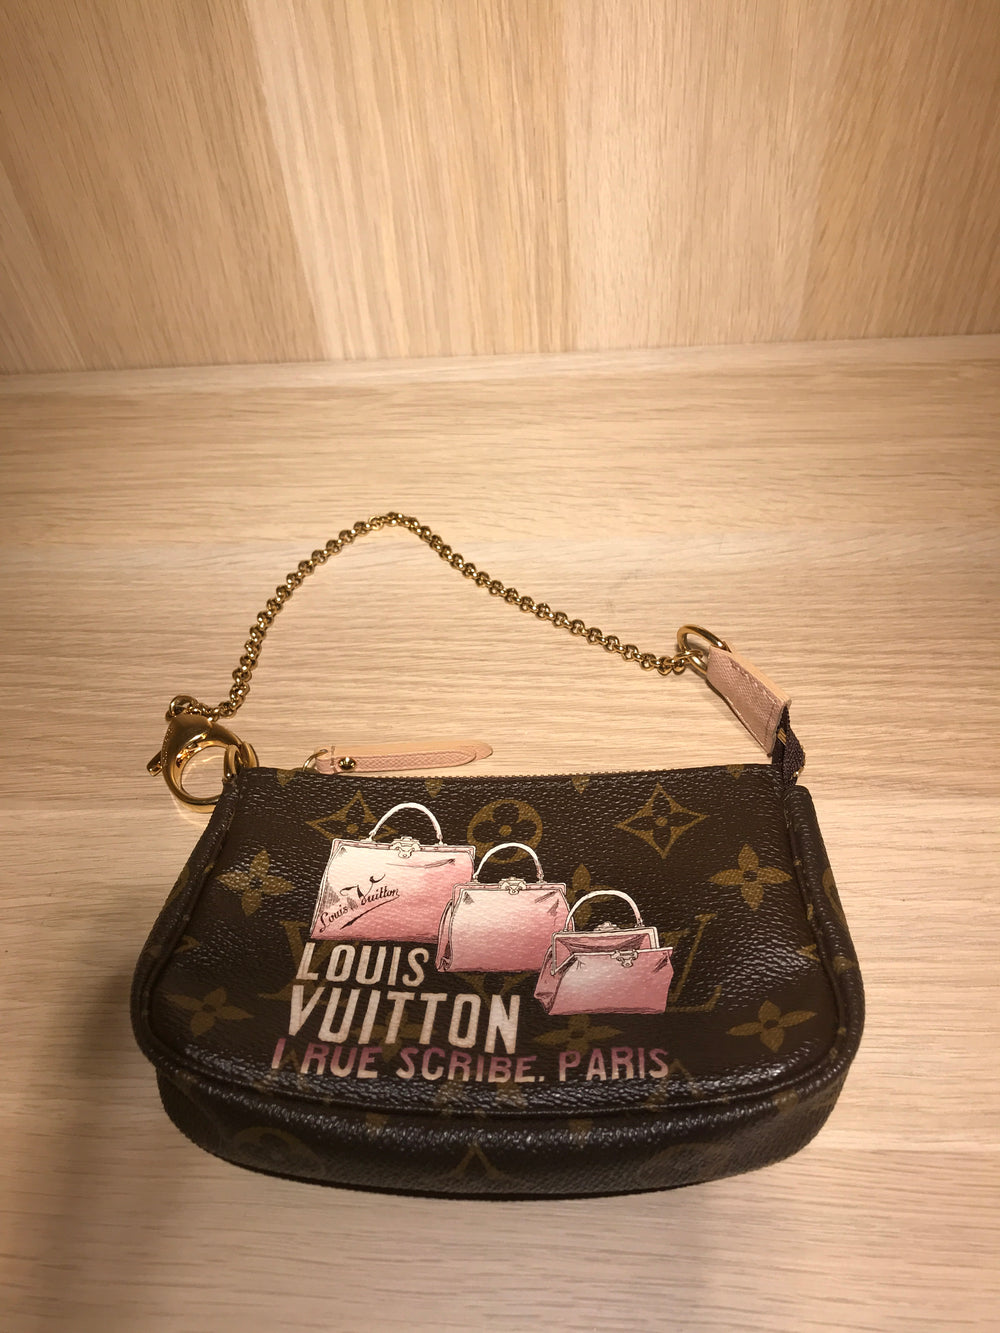 Louis Vuitton Mini Pochette - as seen on Instagram 26.07.2020 - Siopaella Designer Exchange